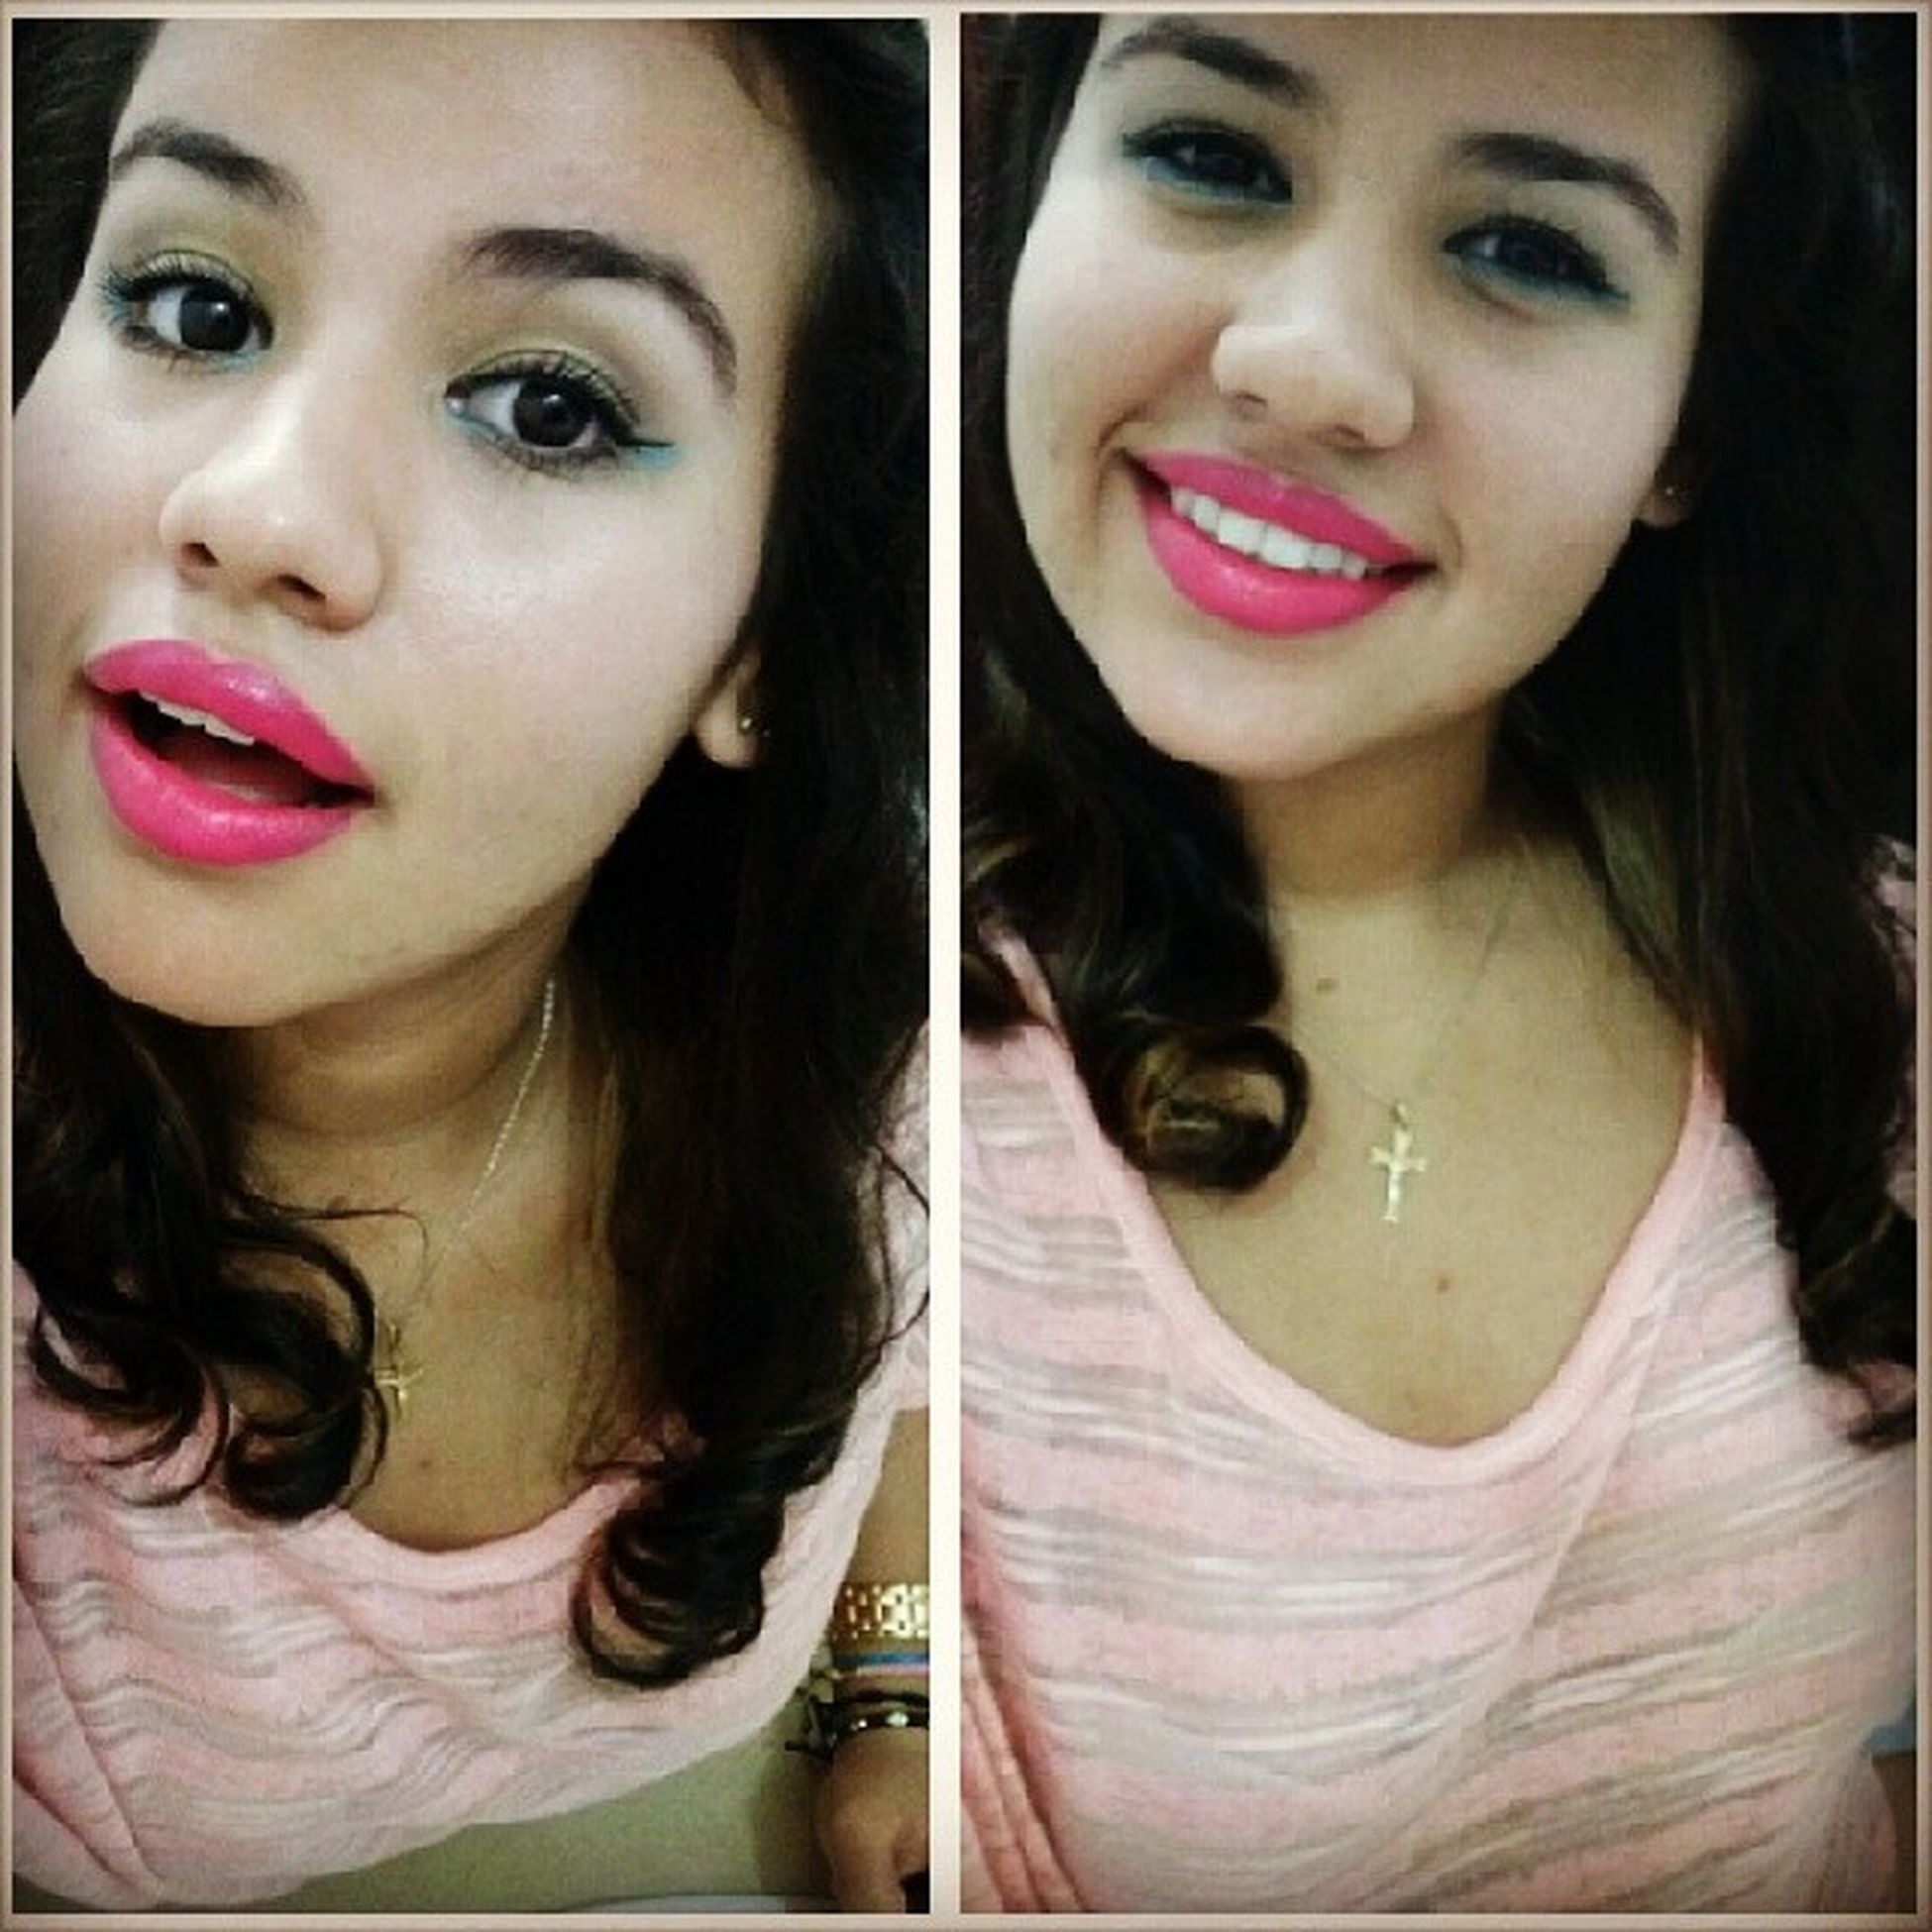 Let's have some fun,this beat is sick~ Greeneyeliner Berrypinklipstick Lipsticklover TooCute letshavesomefun photooftheday ojitoslindos donthate dontyouwishyputgirlfriendwashotlikeme soybella quemimpolta smile peach abul